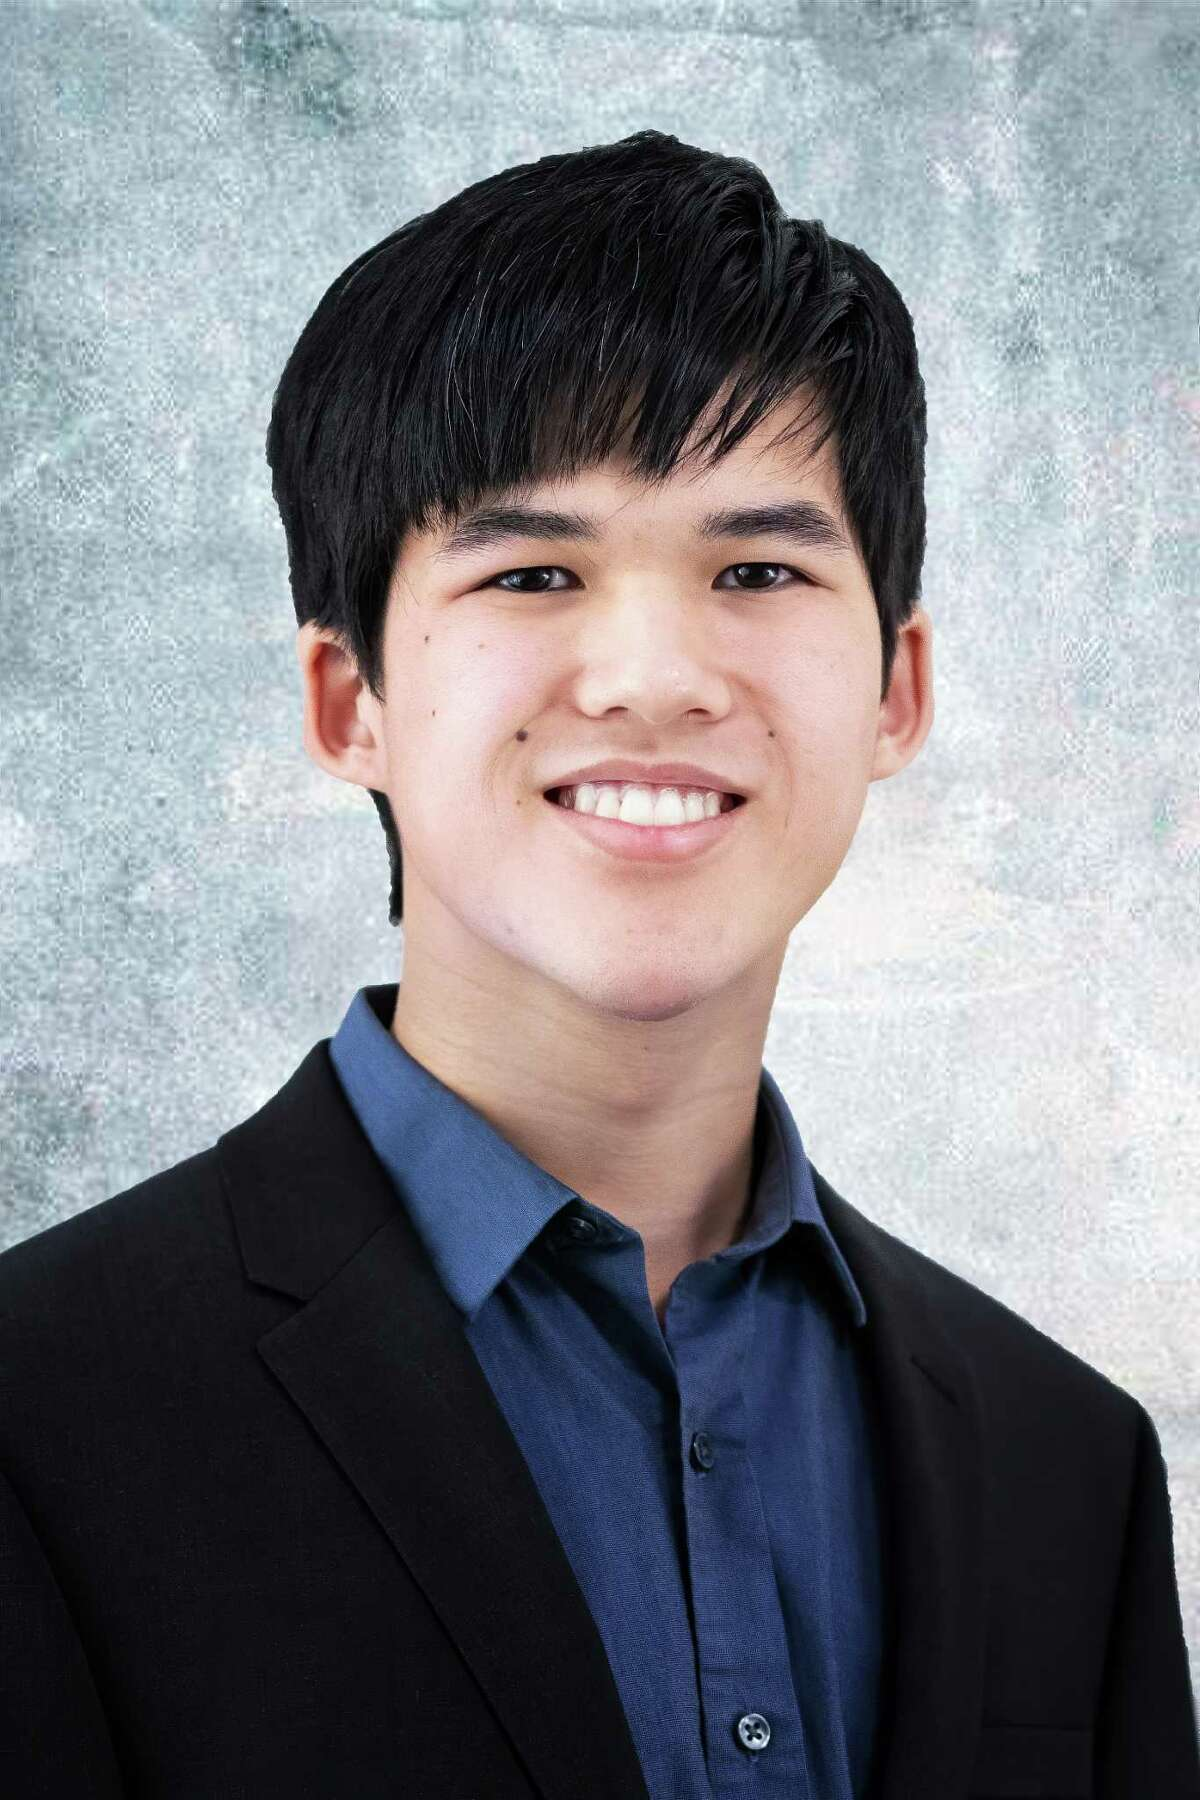 Austin High School valedictorian Joshua Cheung is planning to attend the University of Texas at Austin to study mechanical engineering. His advice: Try your best. Remember what is most important to you and avoid losing sight of your goals. Don't take life too seriously and remember to have fun!